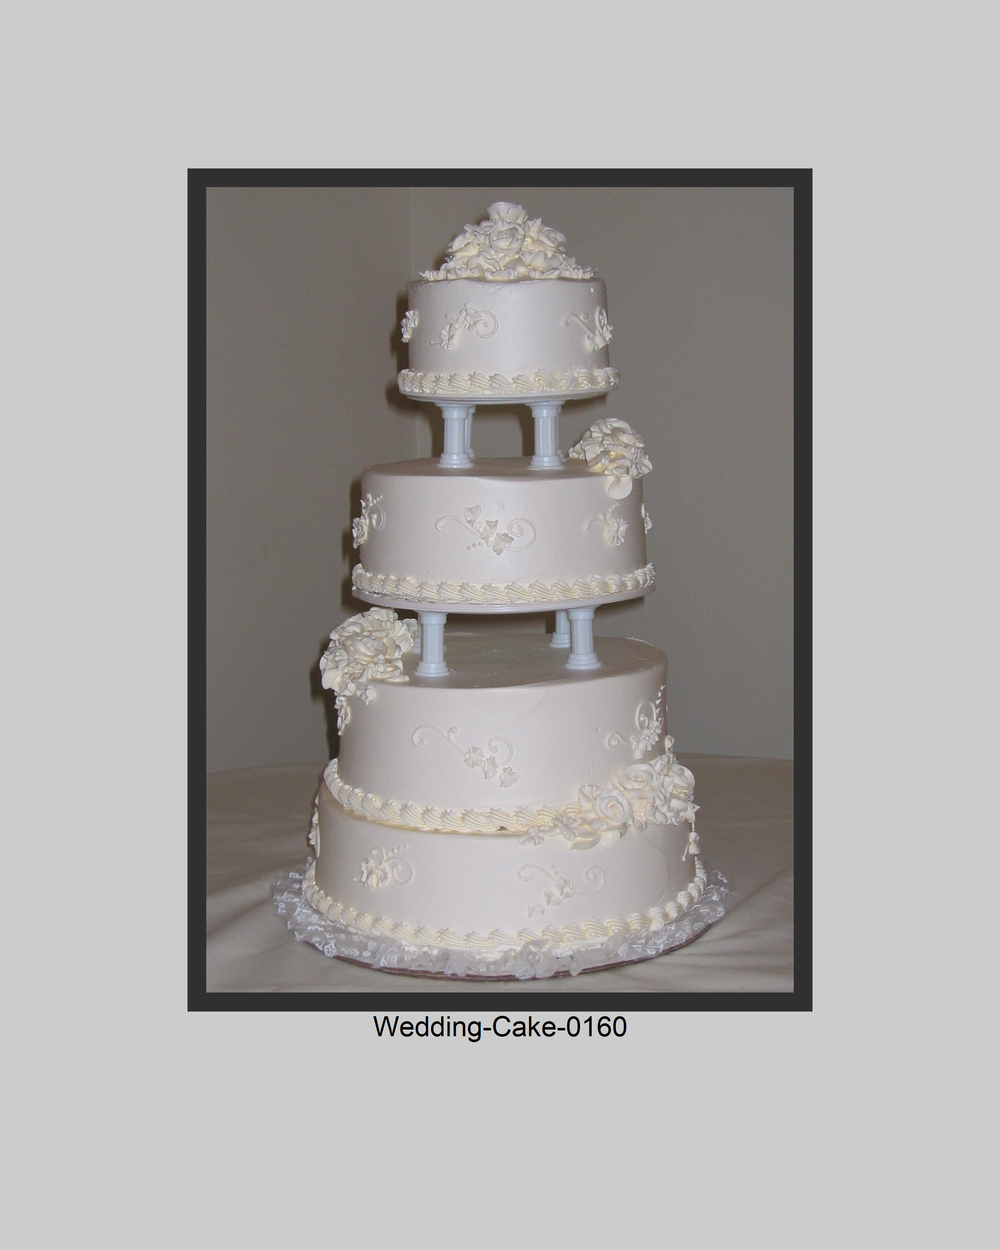 Wedding-Cake-Prints-0160.jpg